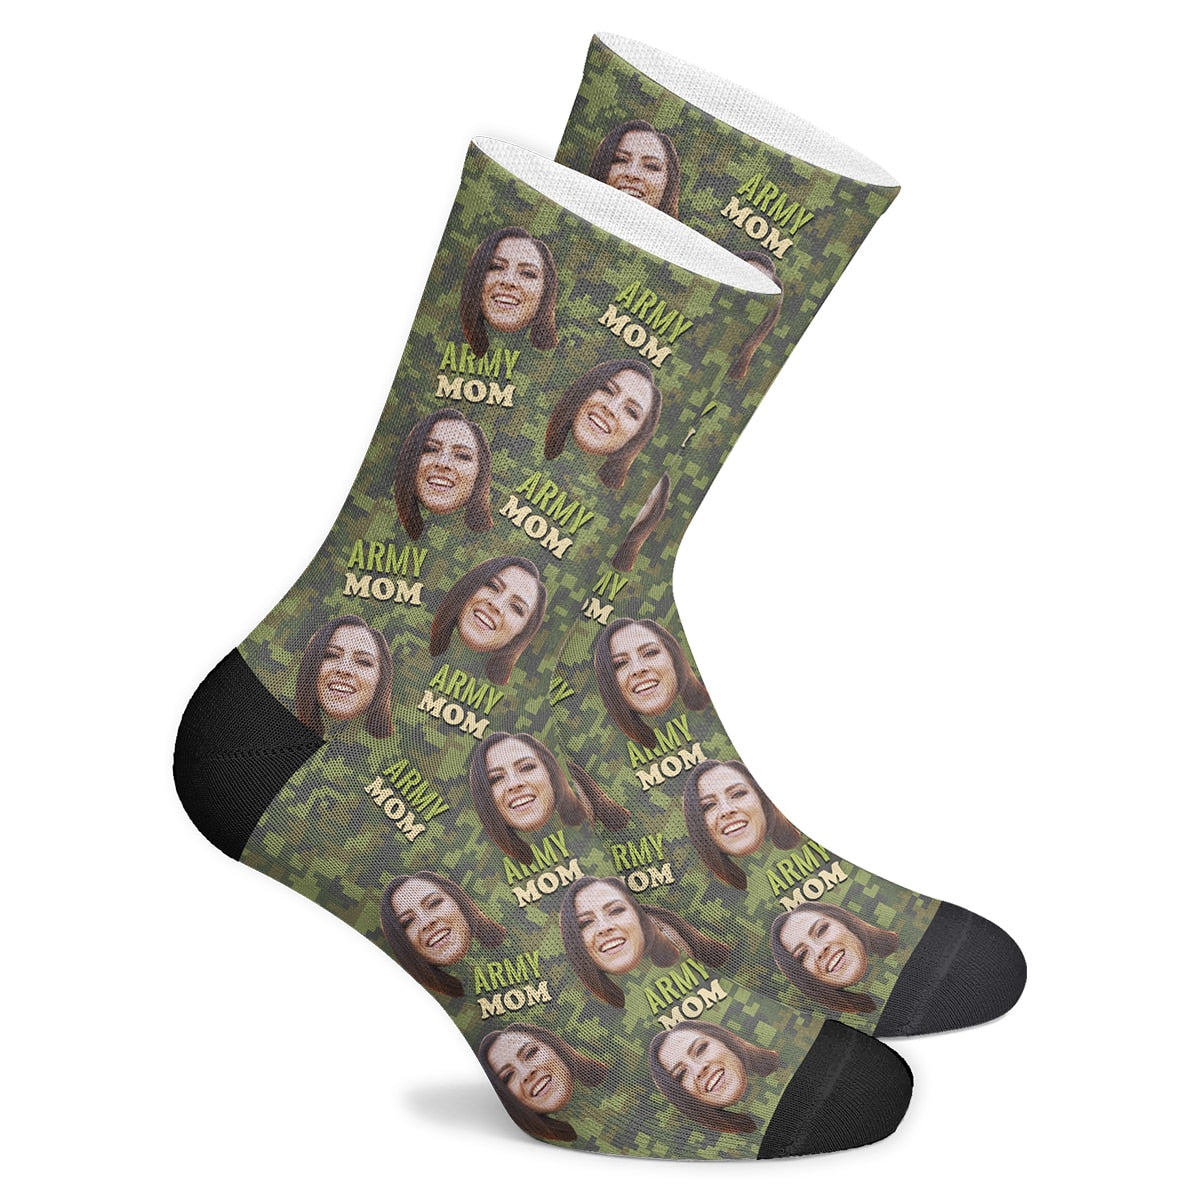 Custom Army Mom Socks - Make Face Socks